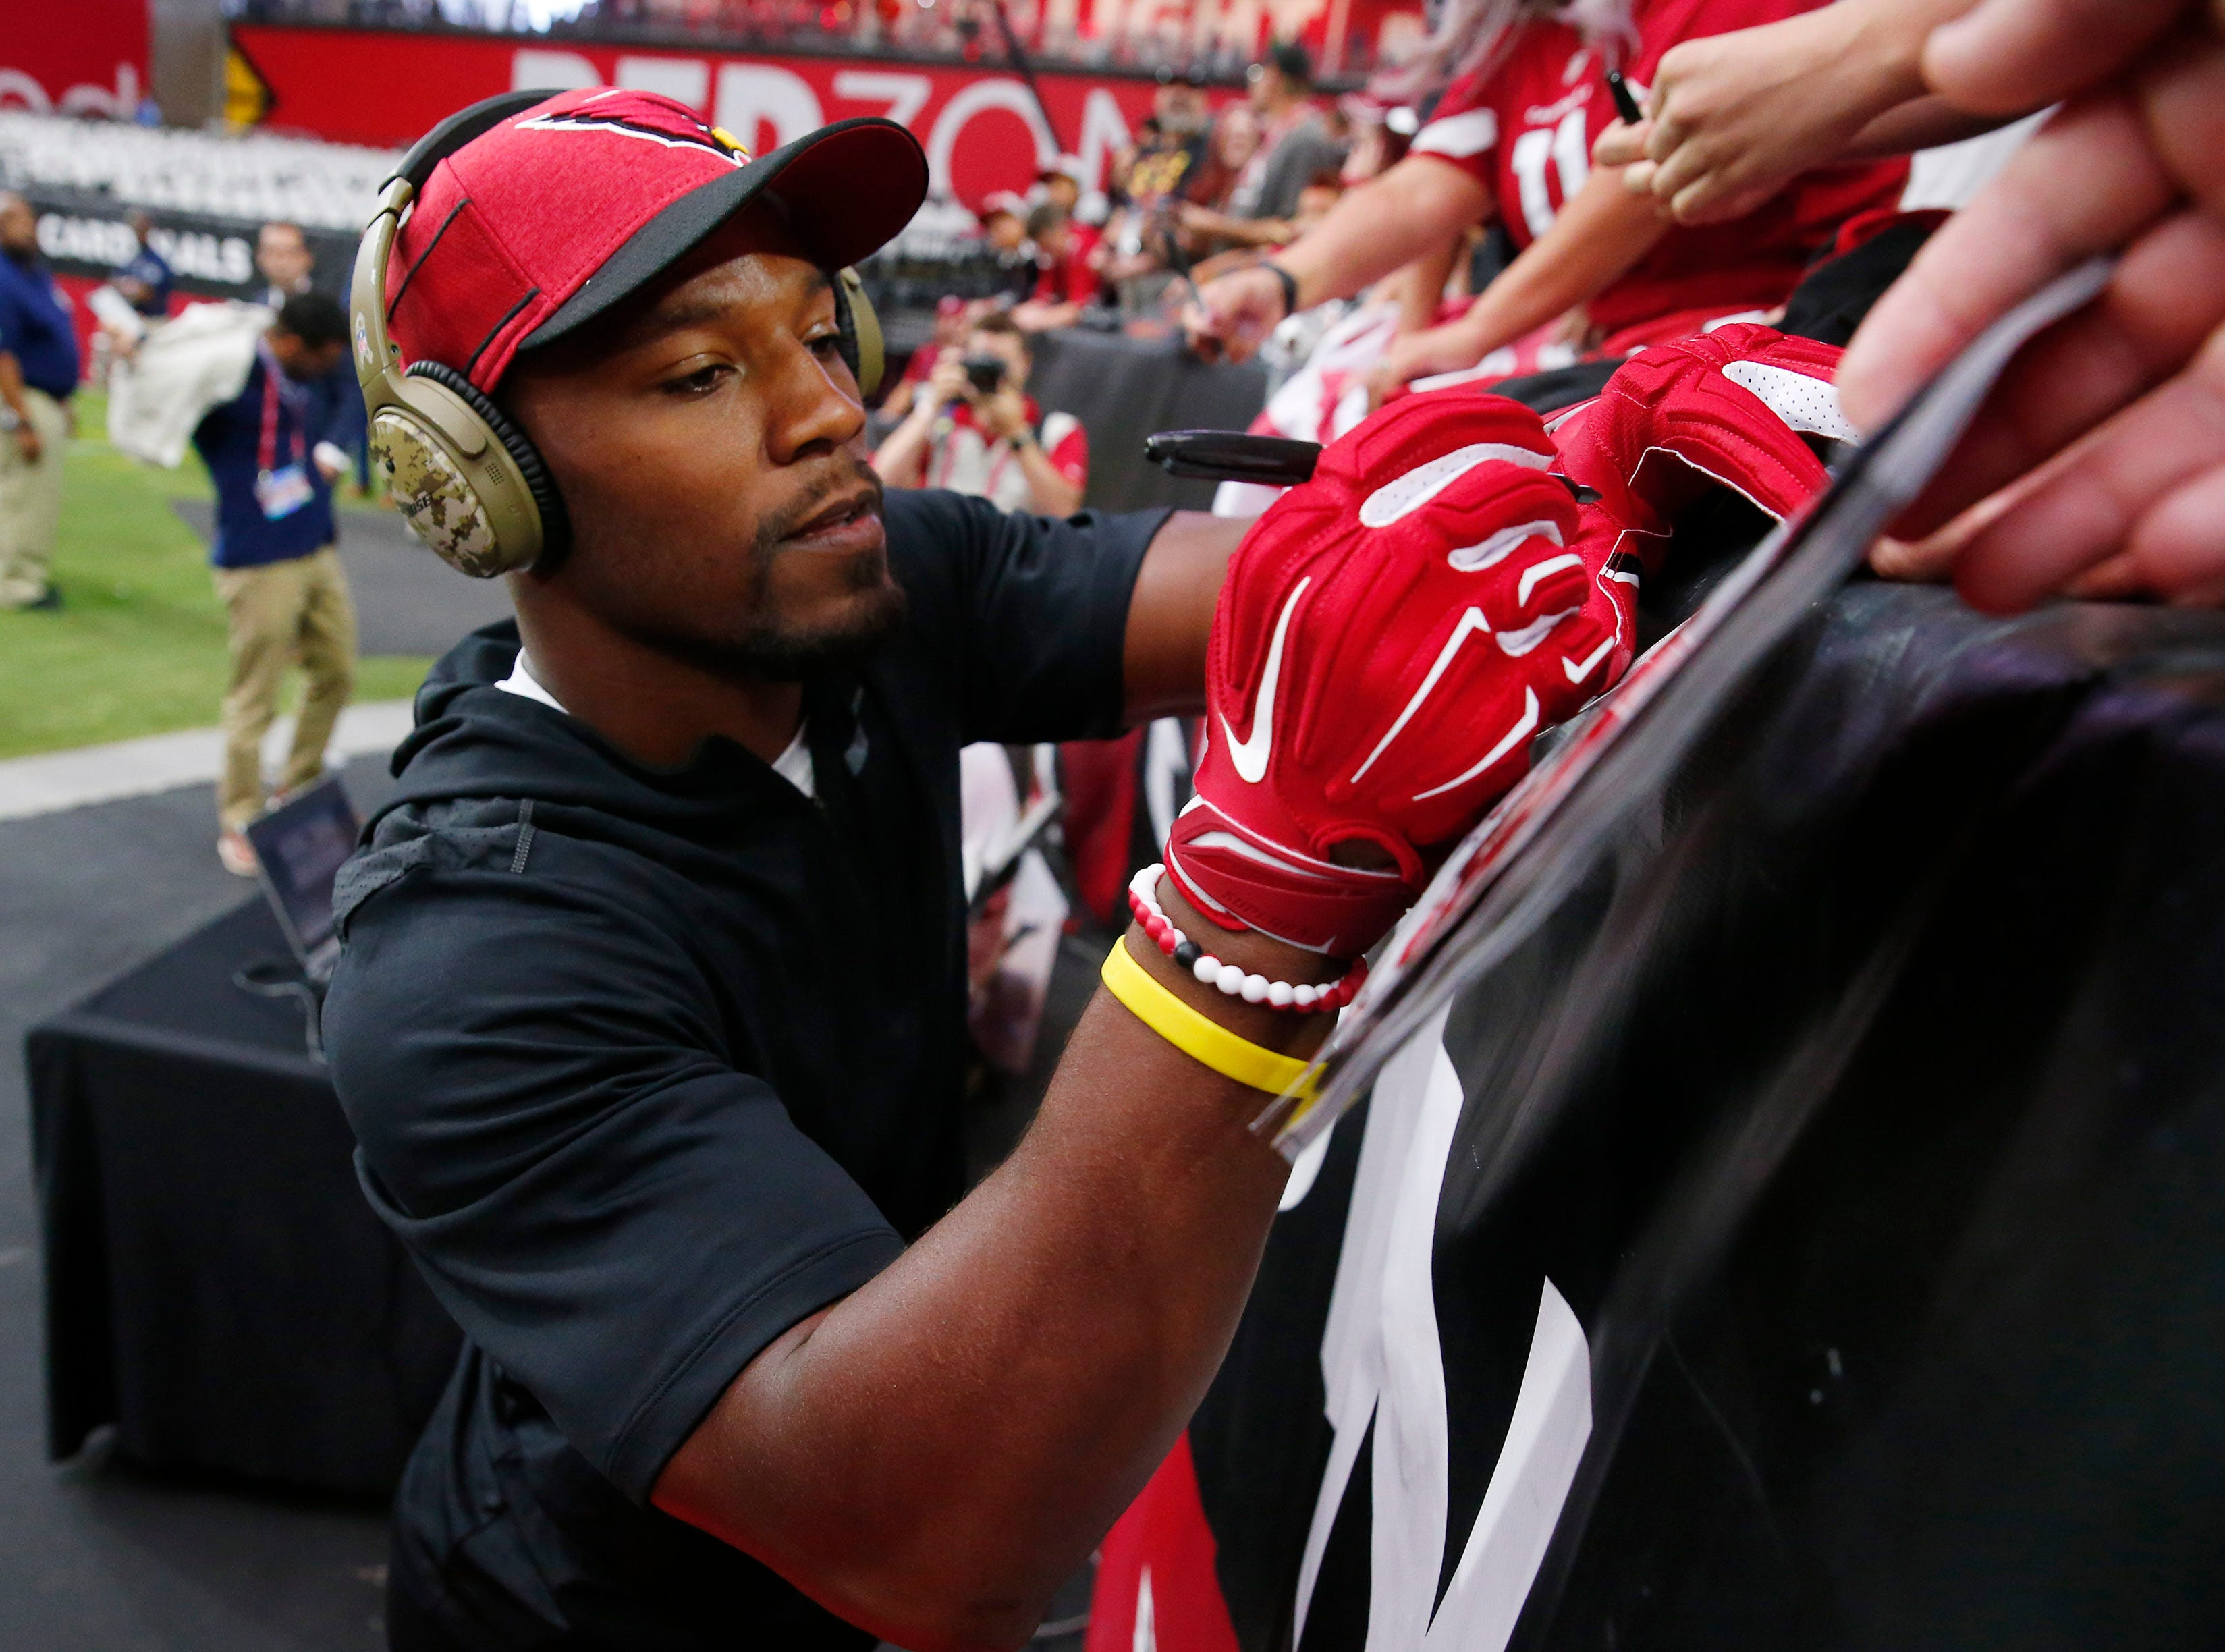 Arizona Cardinals running back David Johnson (31) signs autographs before NFL action against the Chicago Bears at State Farm Stadium in Glendale, Ariz. September 30, 2018.